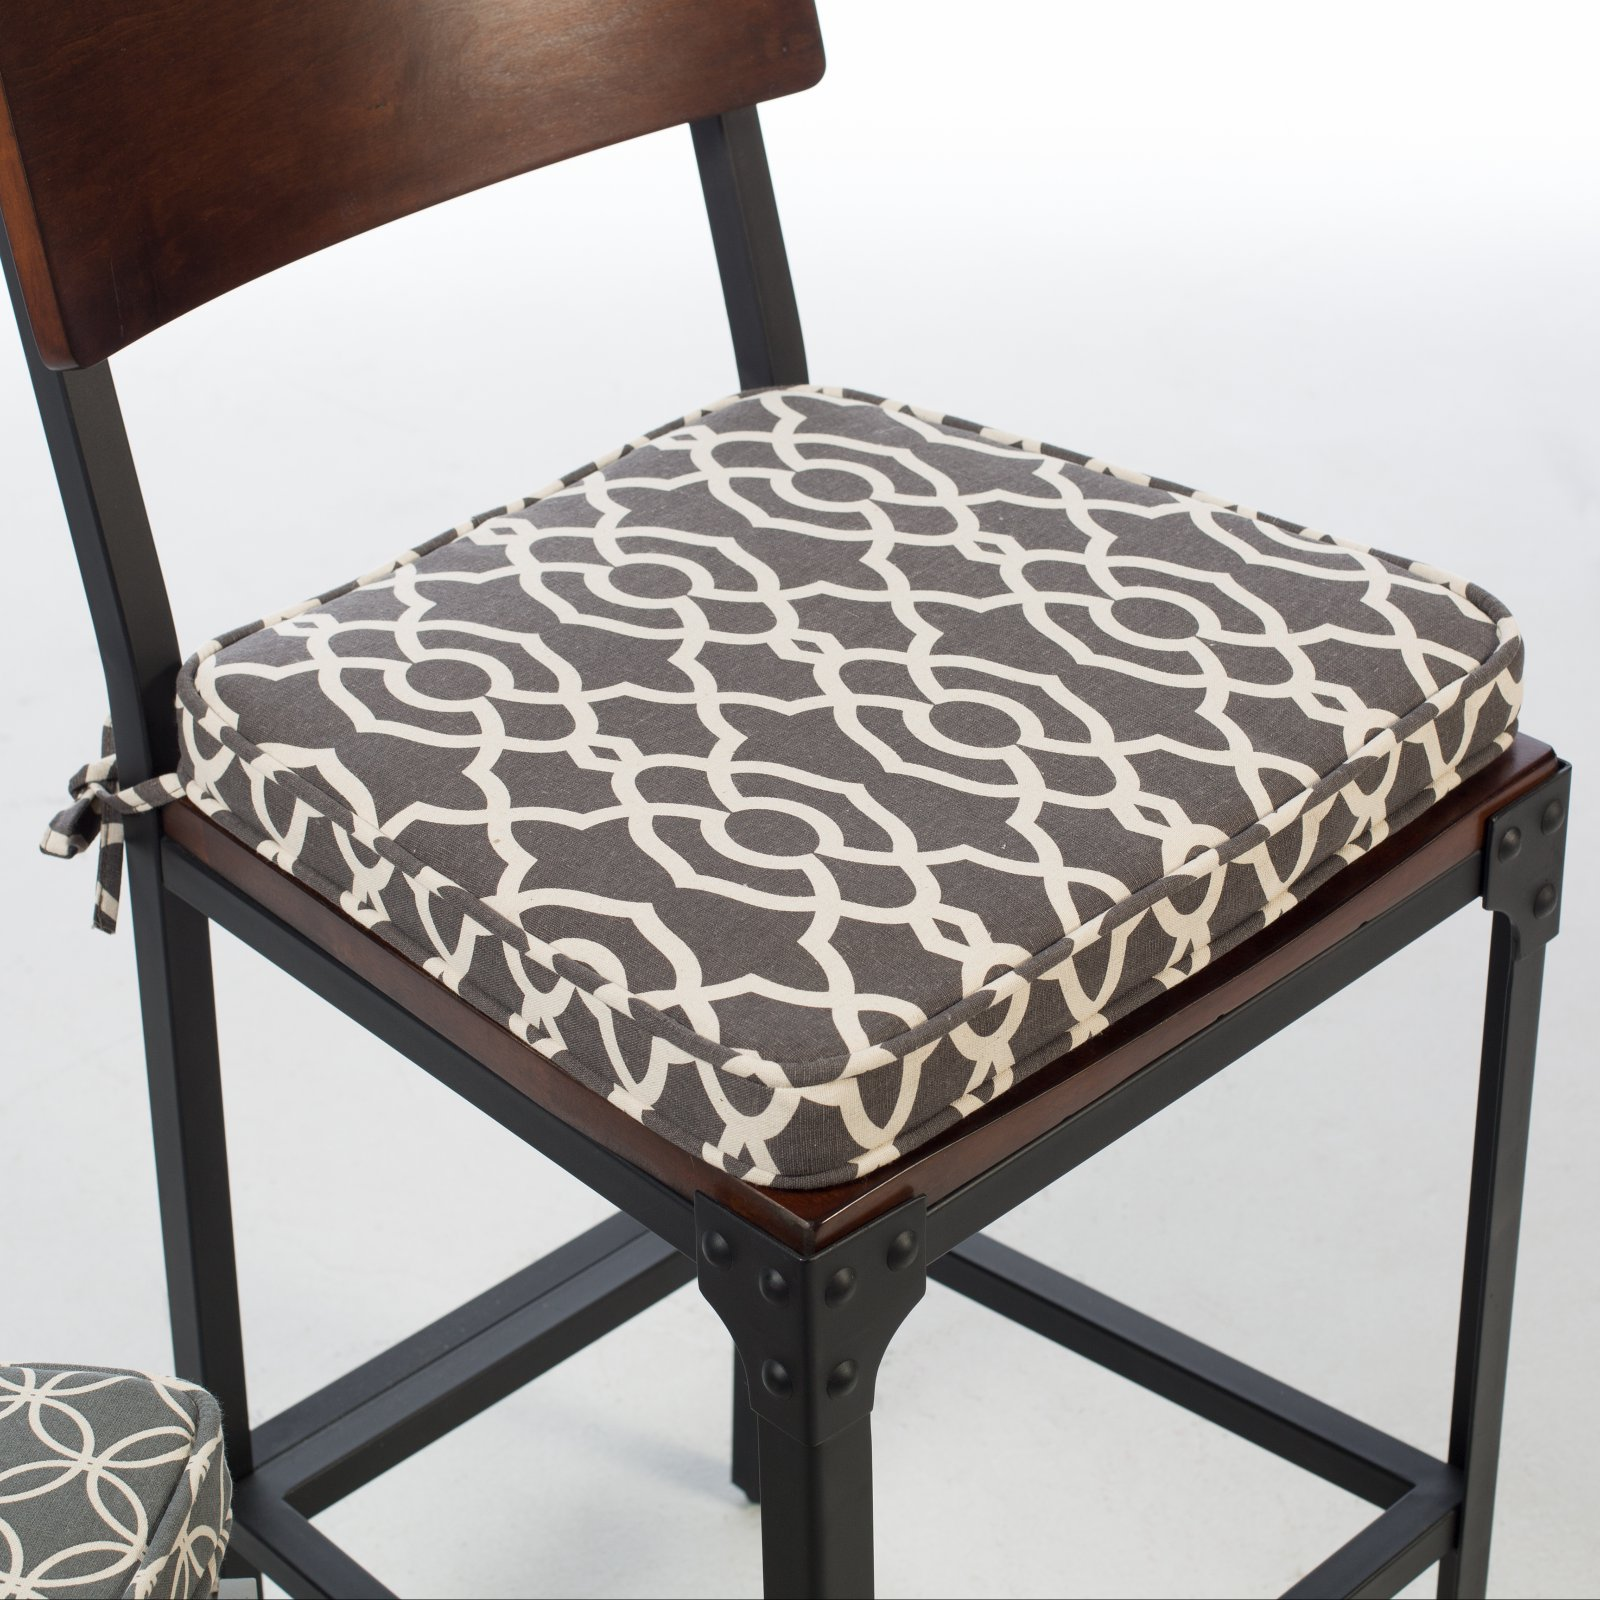 Cushion Chair Belham Living Printed Indoor Dining Chair Cushion